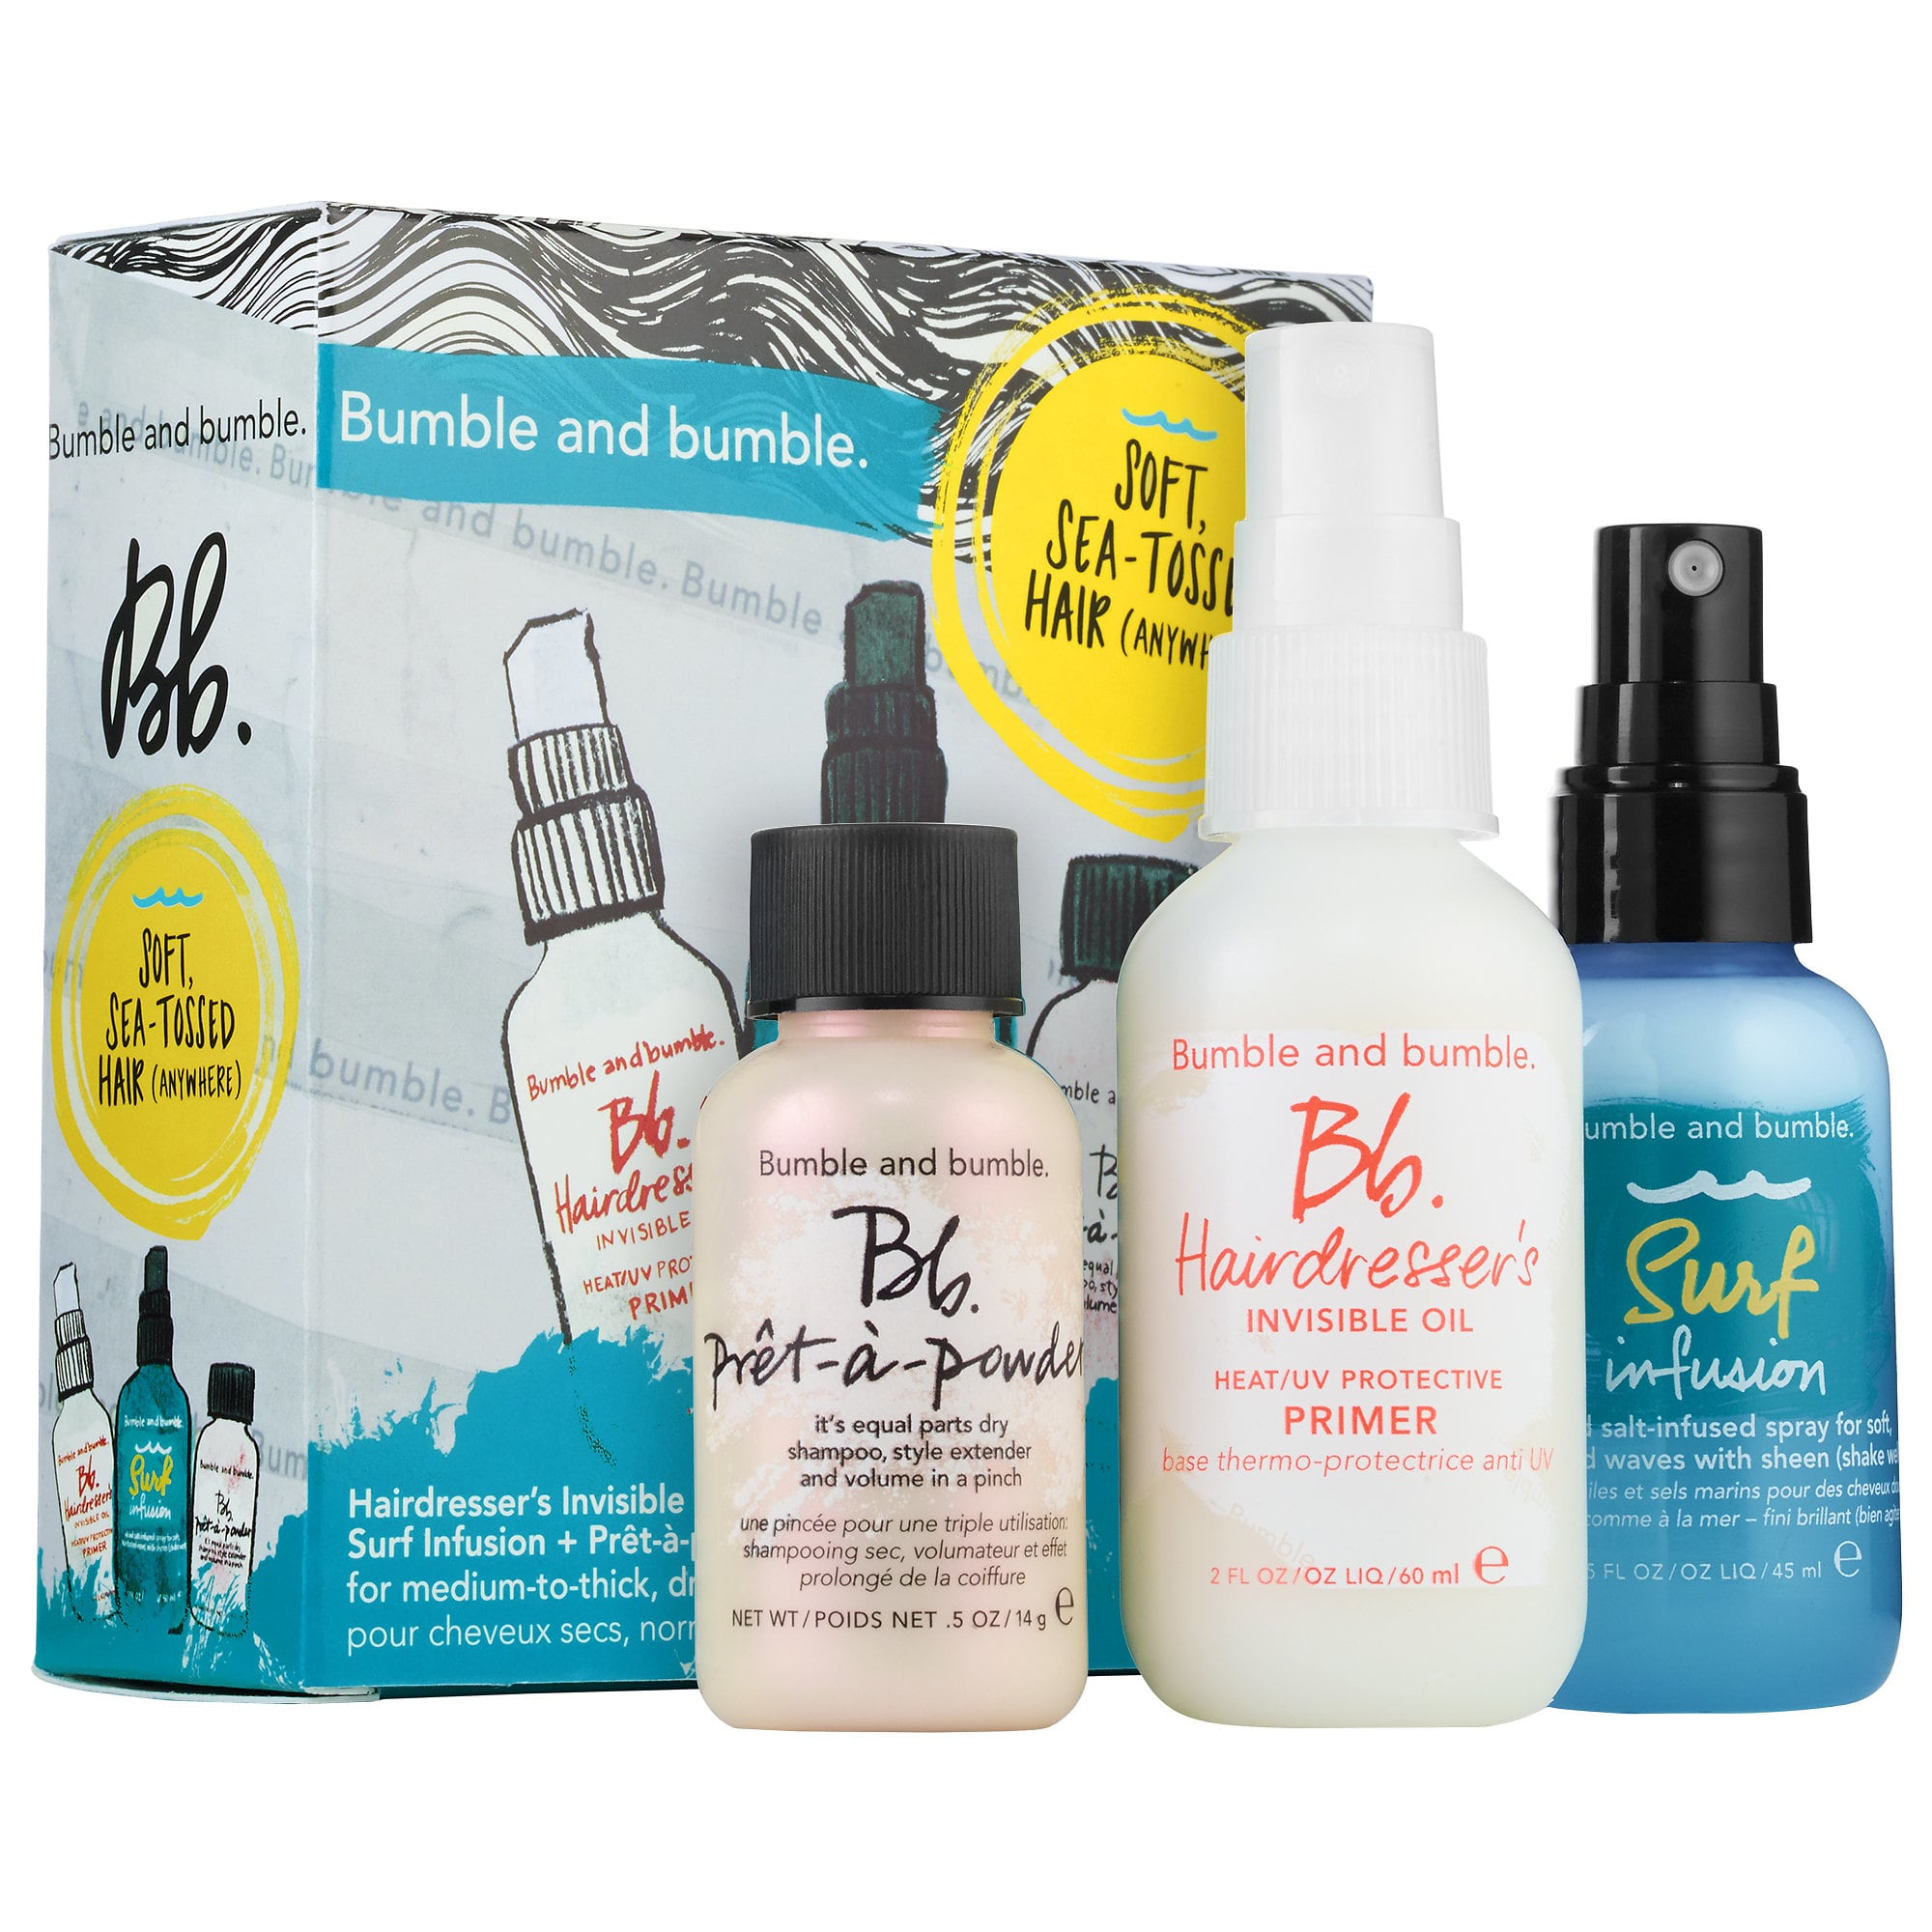 Have a beauty loving traveler in your life? Consider this Bumble and Bumble travel sized hair kit